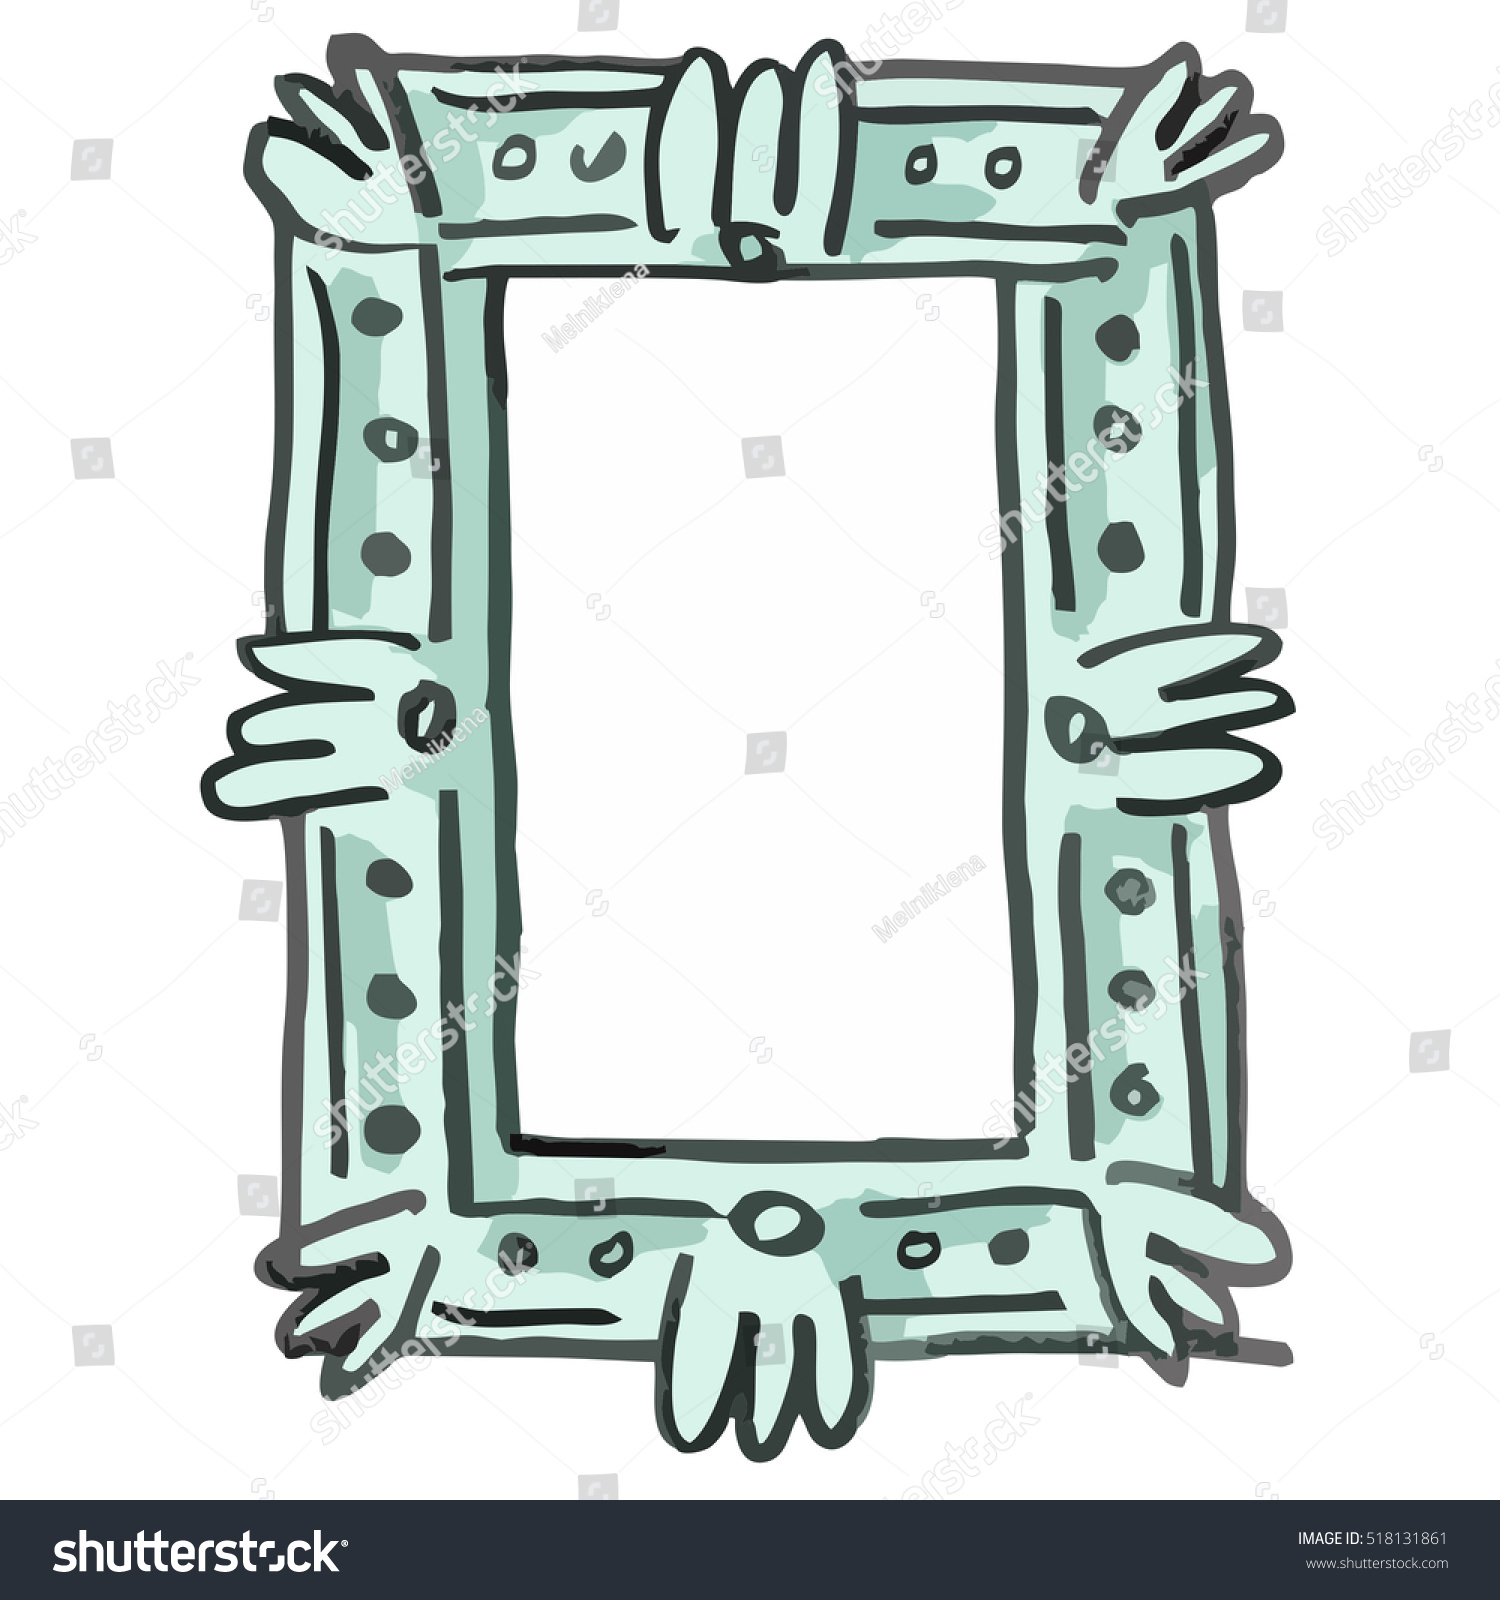 Cartoon Photo Picture Painting Drawing Frame Stock Vector ...